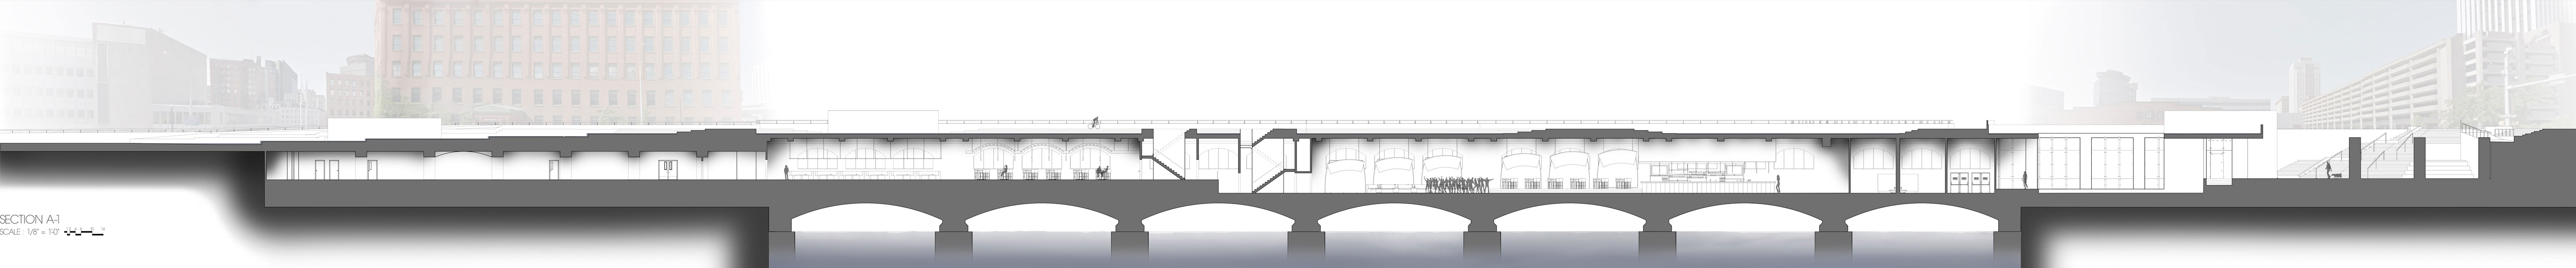 Elevation view. South side of aqueduct bridge. [IMAGE: Kenneth Martin]